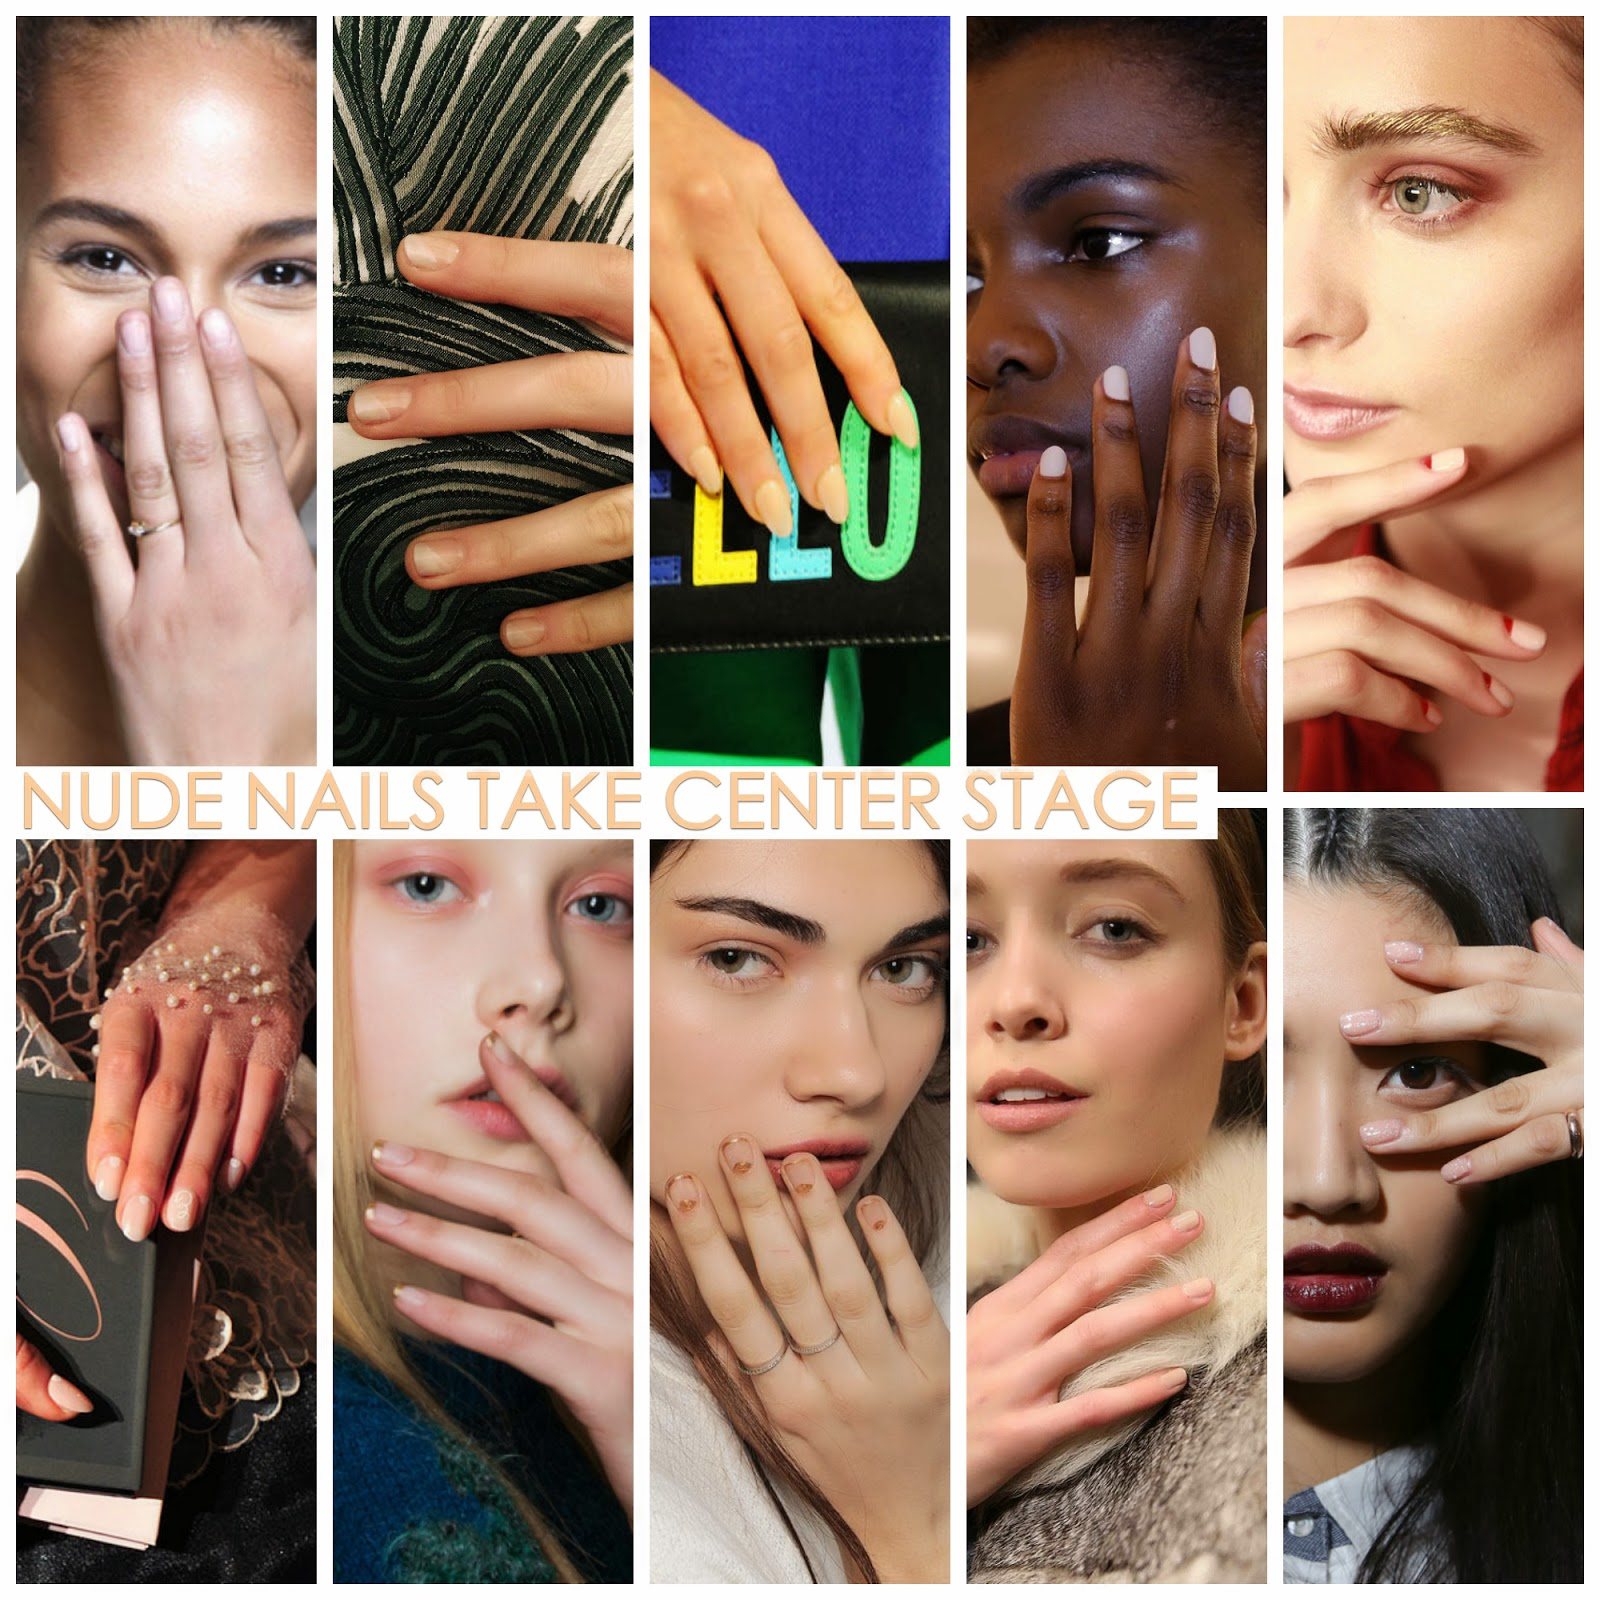 ideas for nude nail art and design